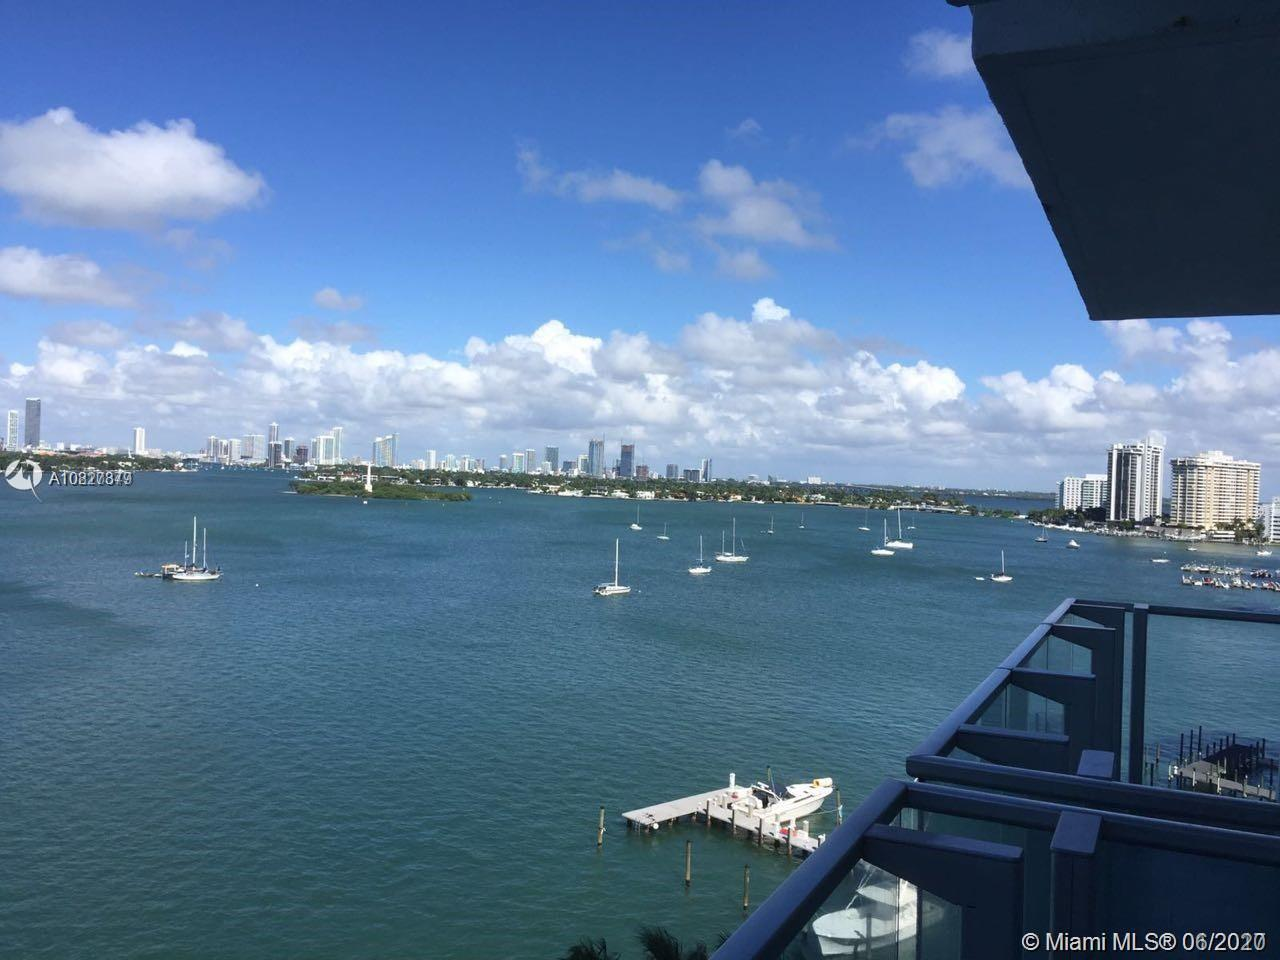 DIRECT WATER VIEW UNIT. NOT IN THE HOTEL PROGRAM. One of the best buildings in South Beach. This is